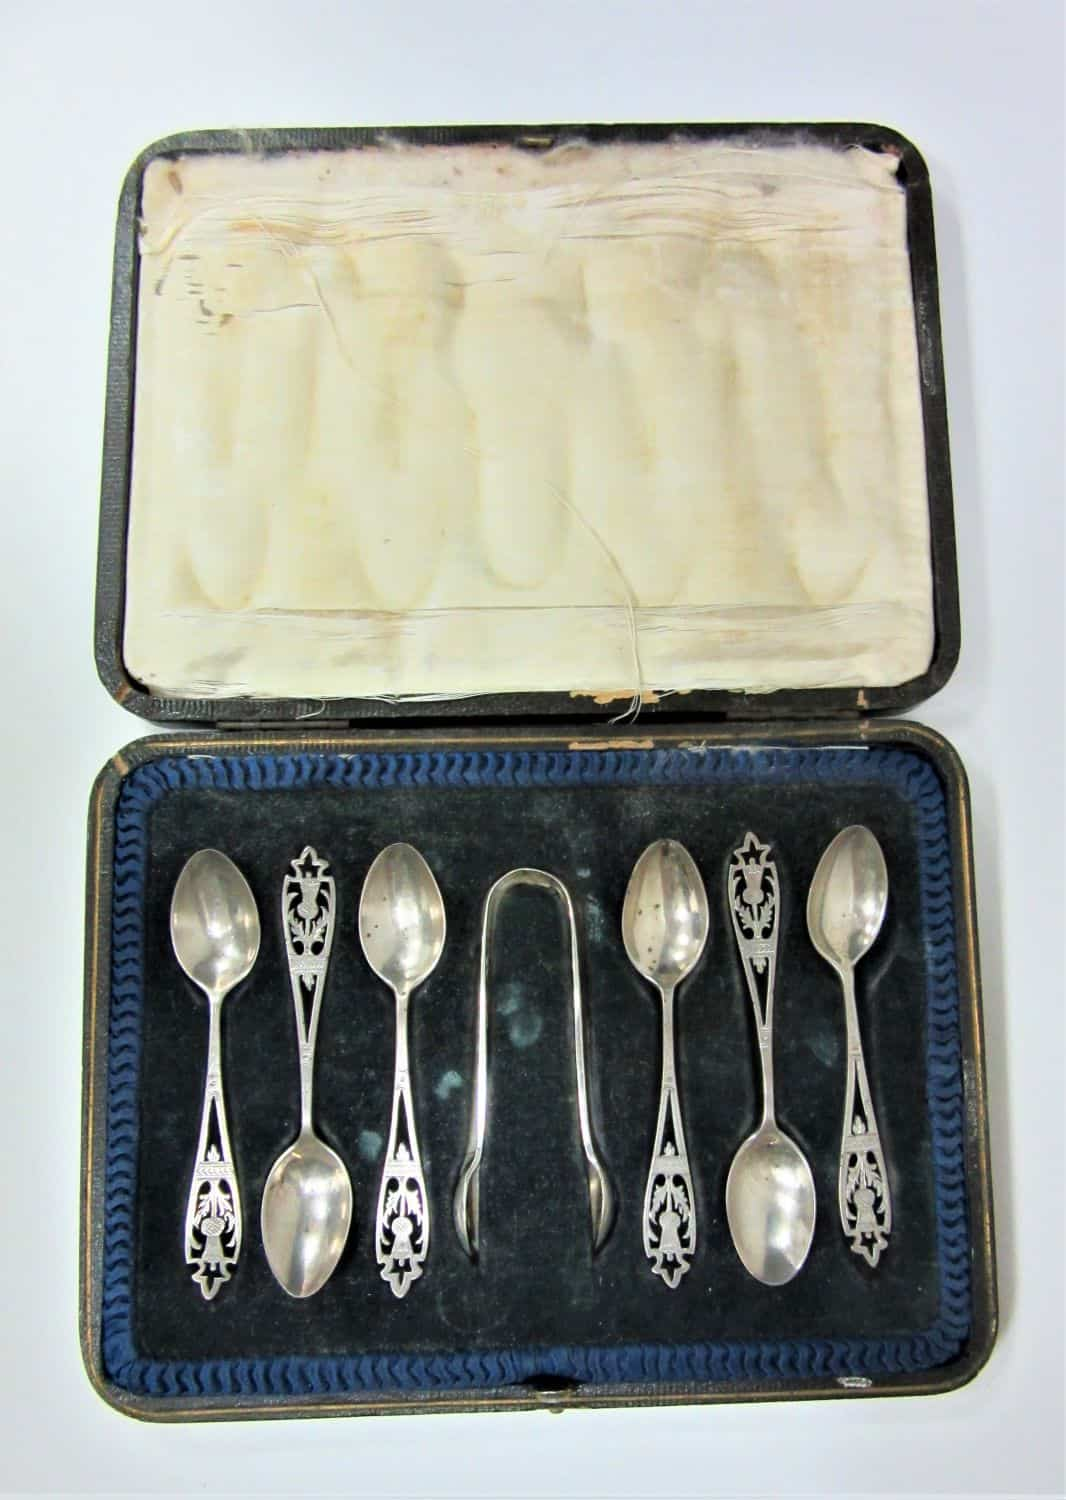 A set of silver teaspoons and sugar tongs decorated with thistles finely brightcut dated 1896 by cooper brothers and sons ,70GRAM